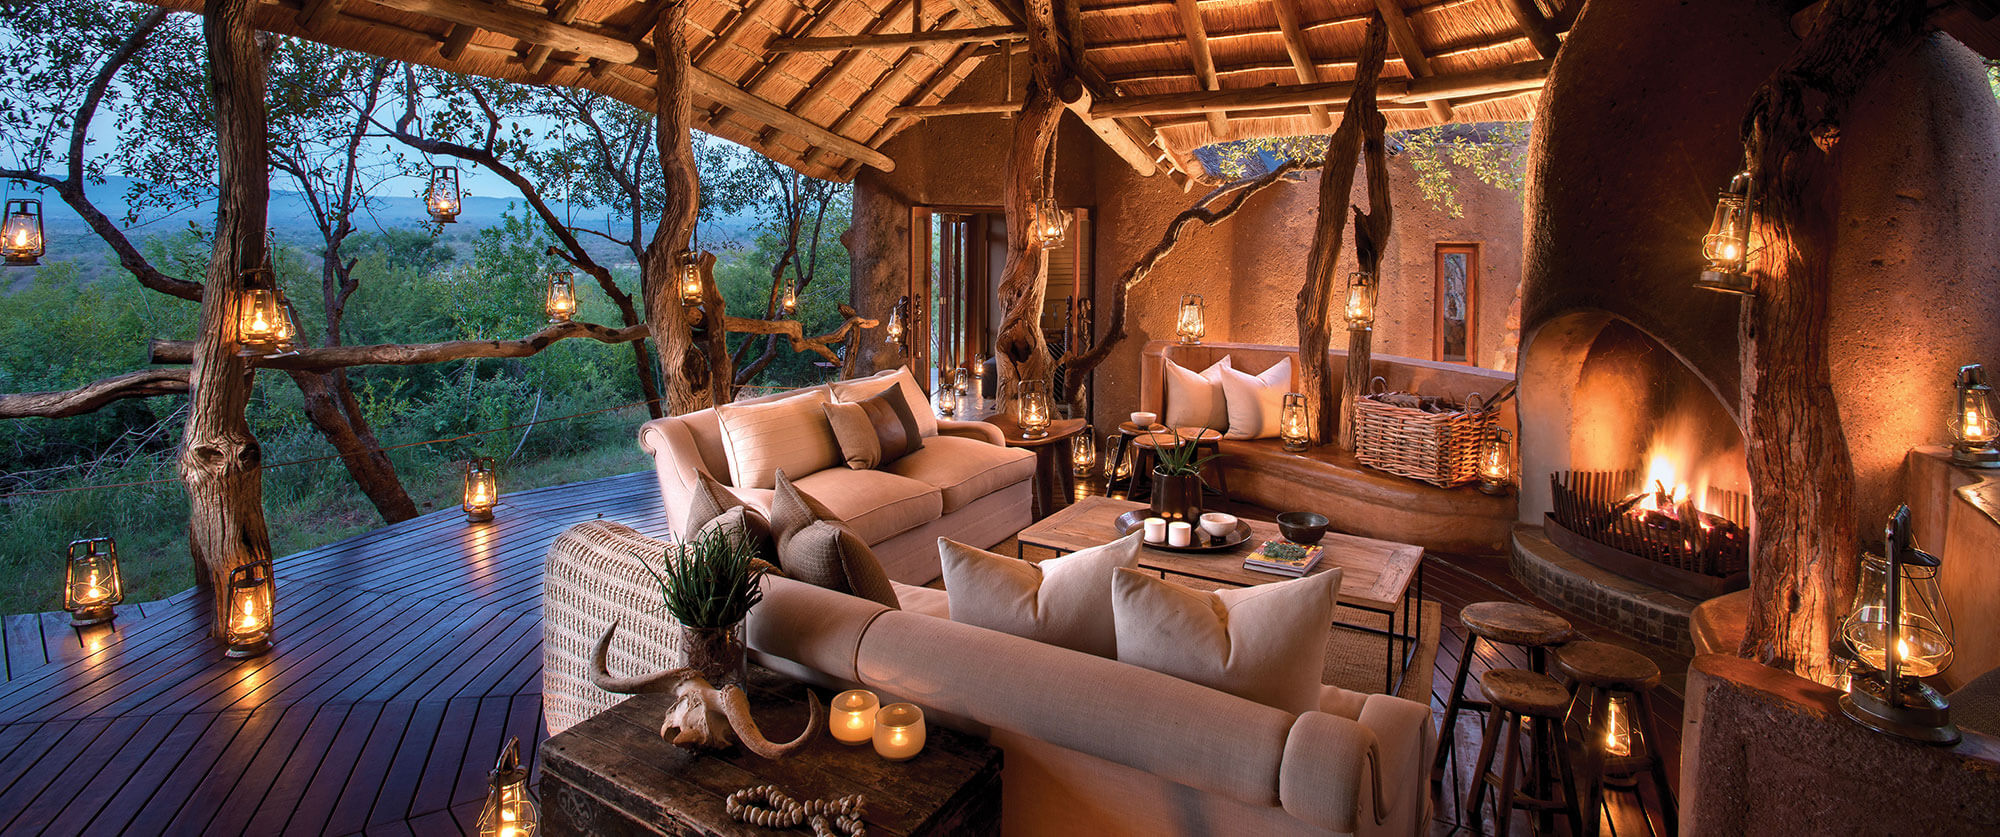 Madikwe Safari Lodge - Best Trips to Africa